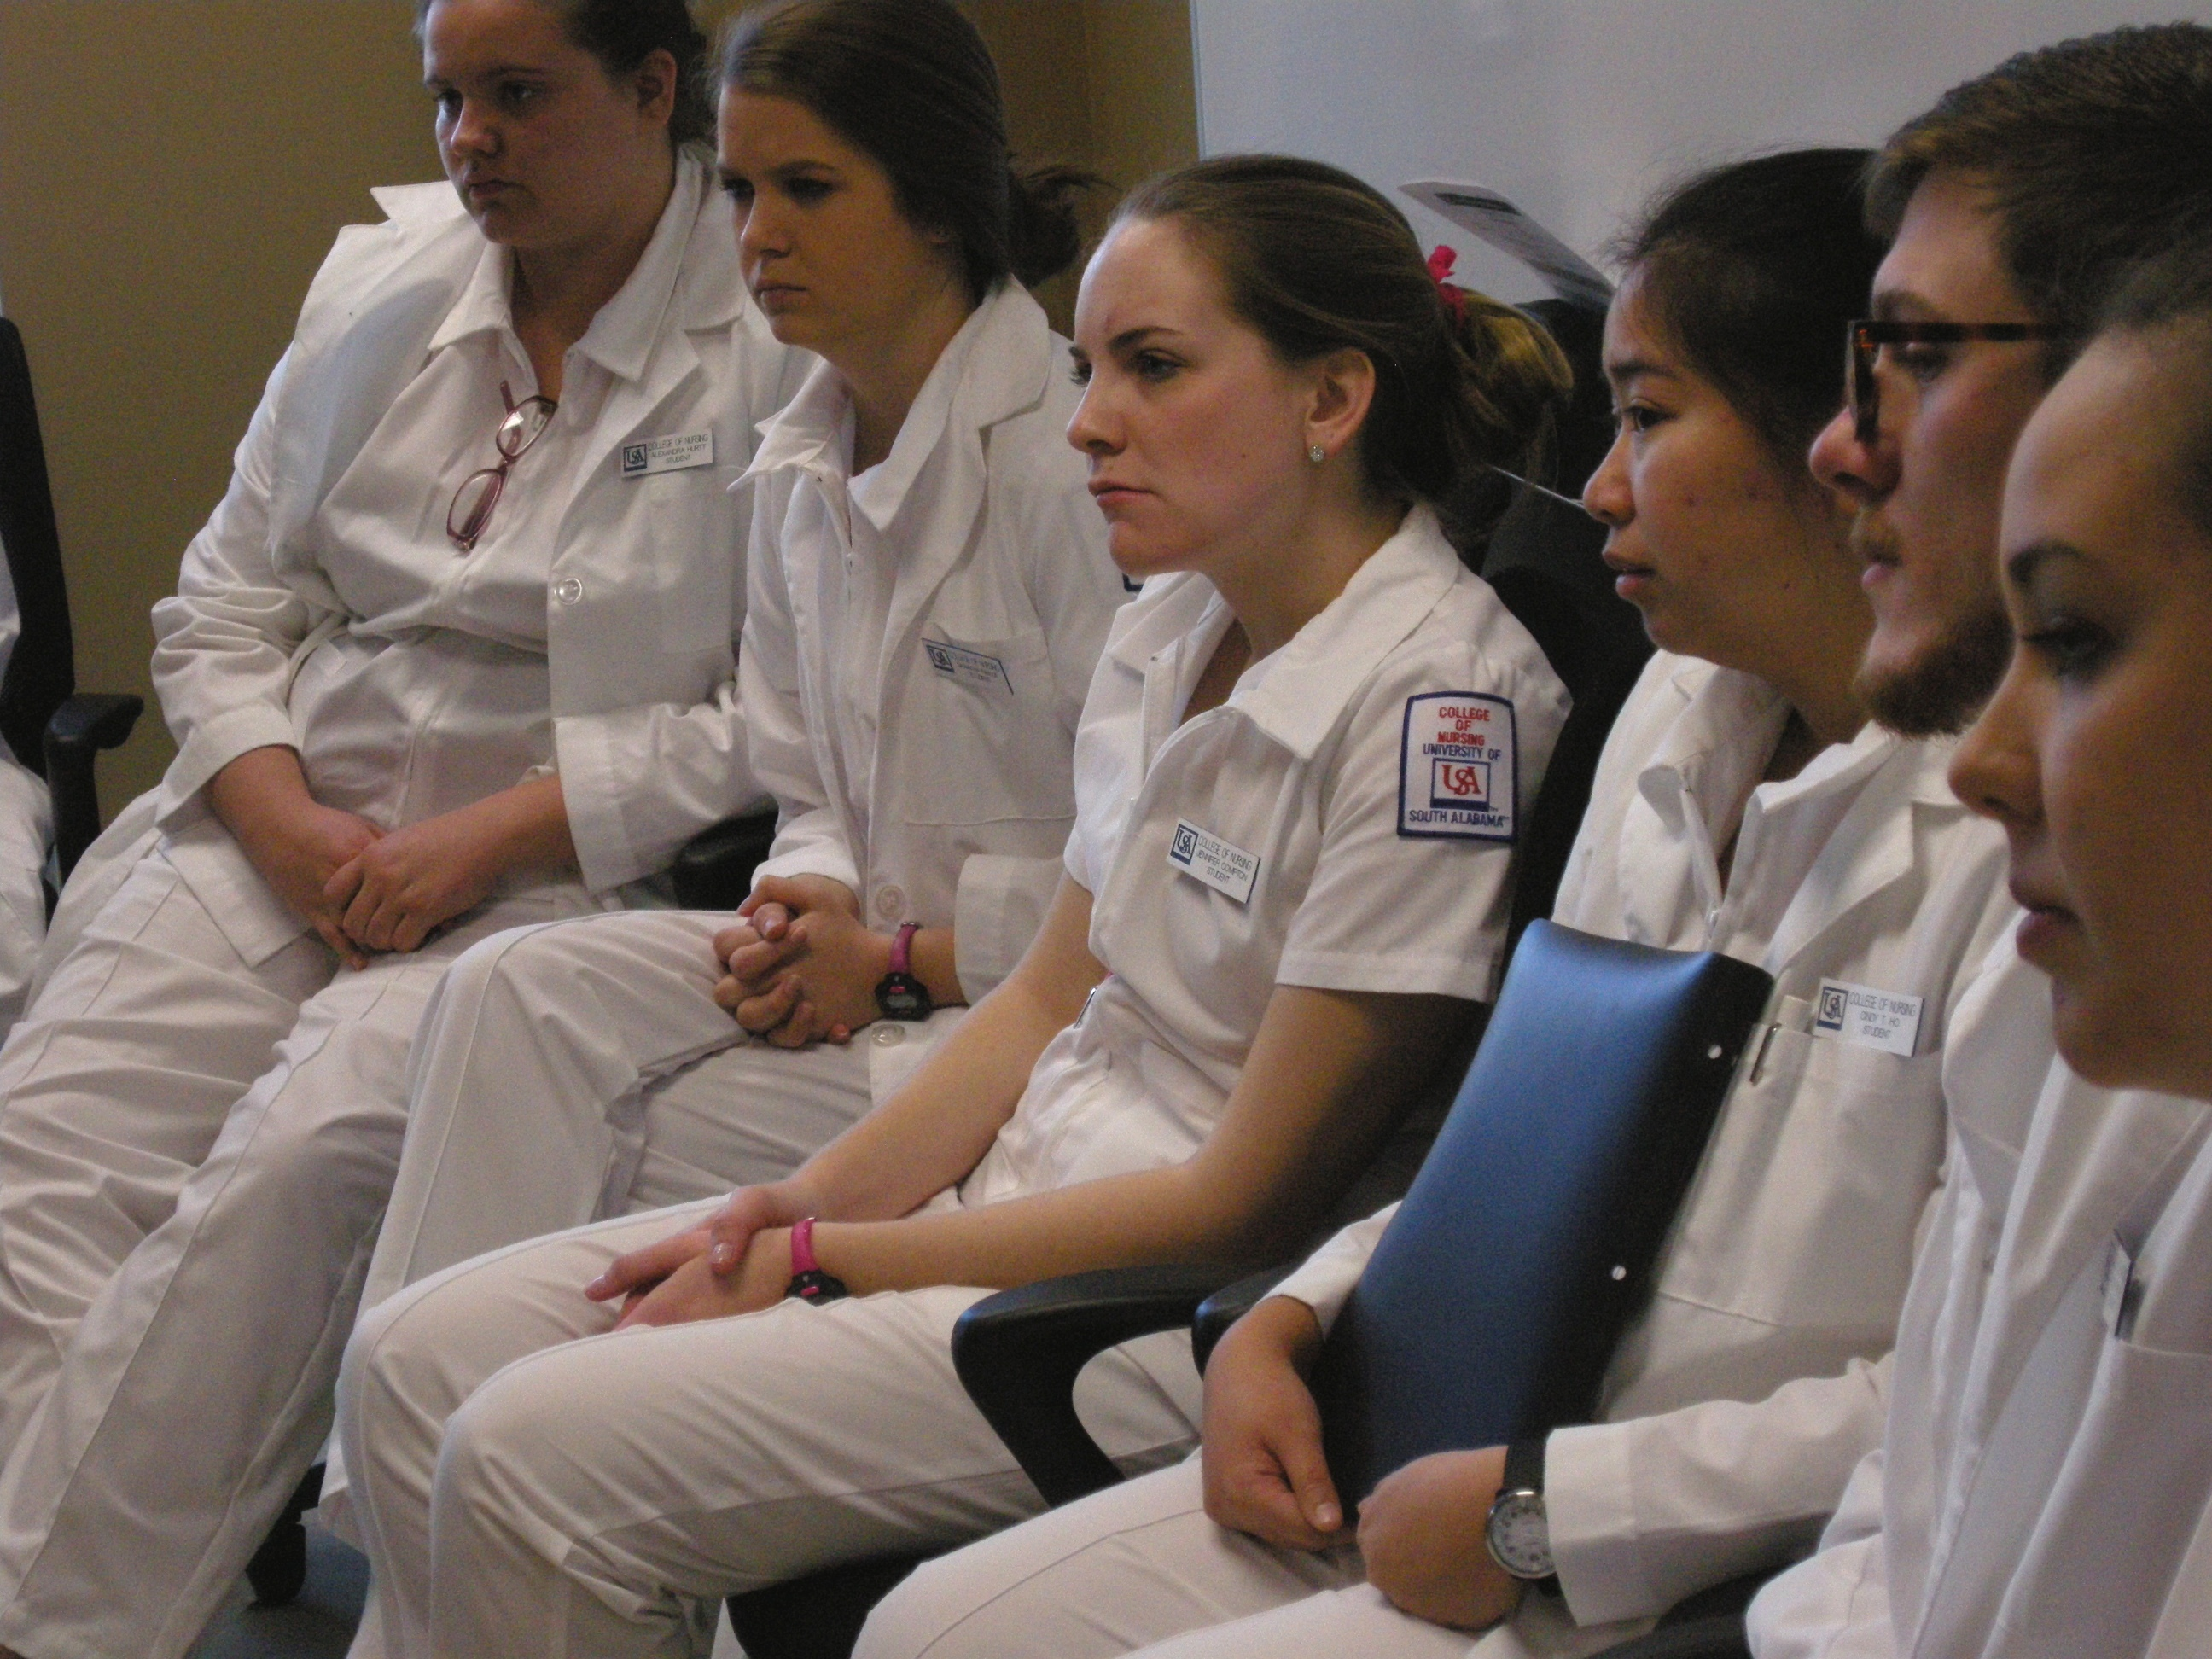 BSN Clinical Students